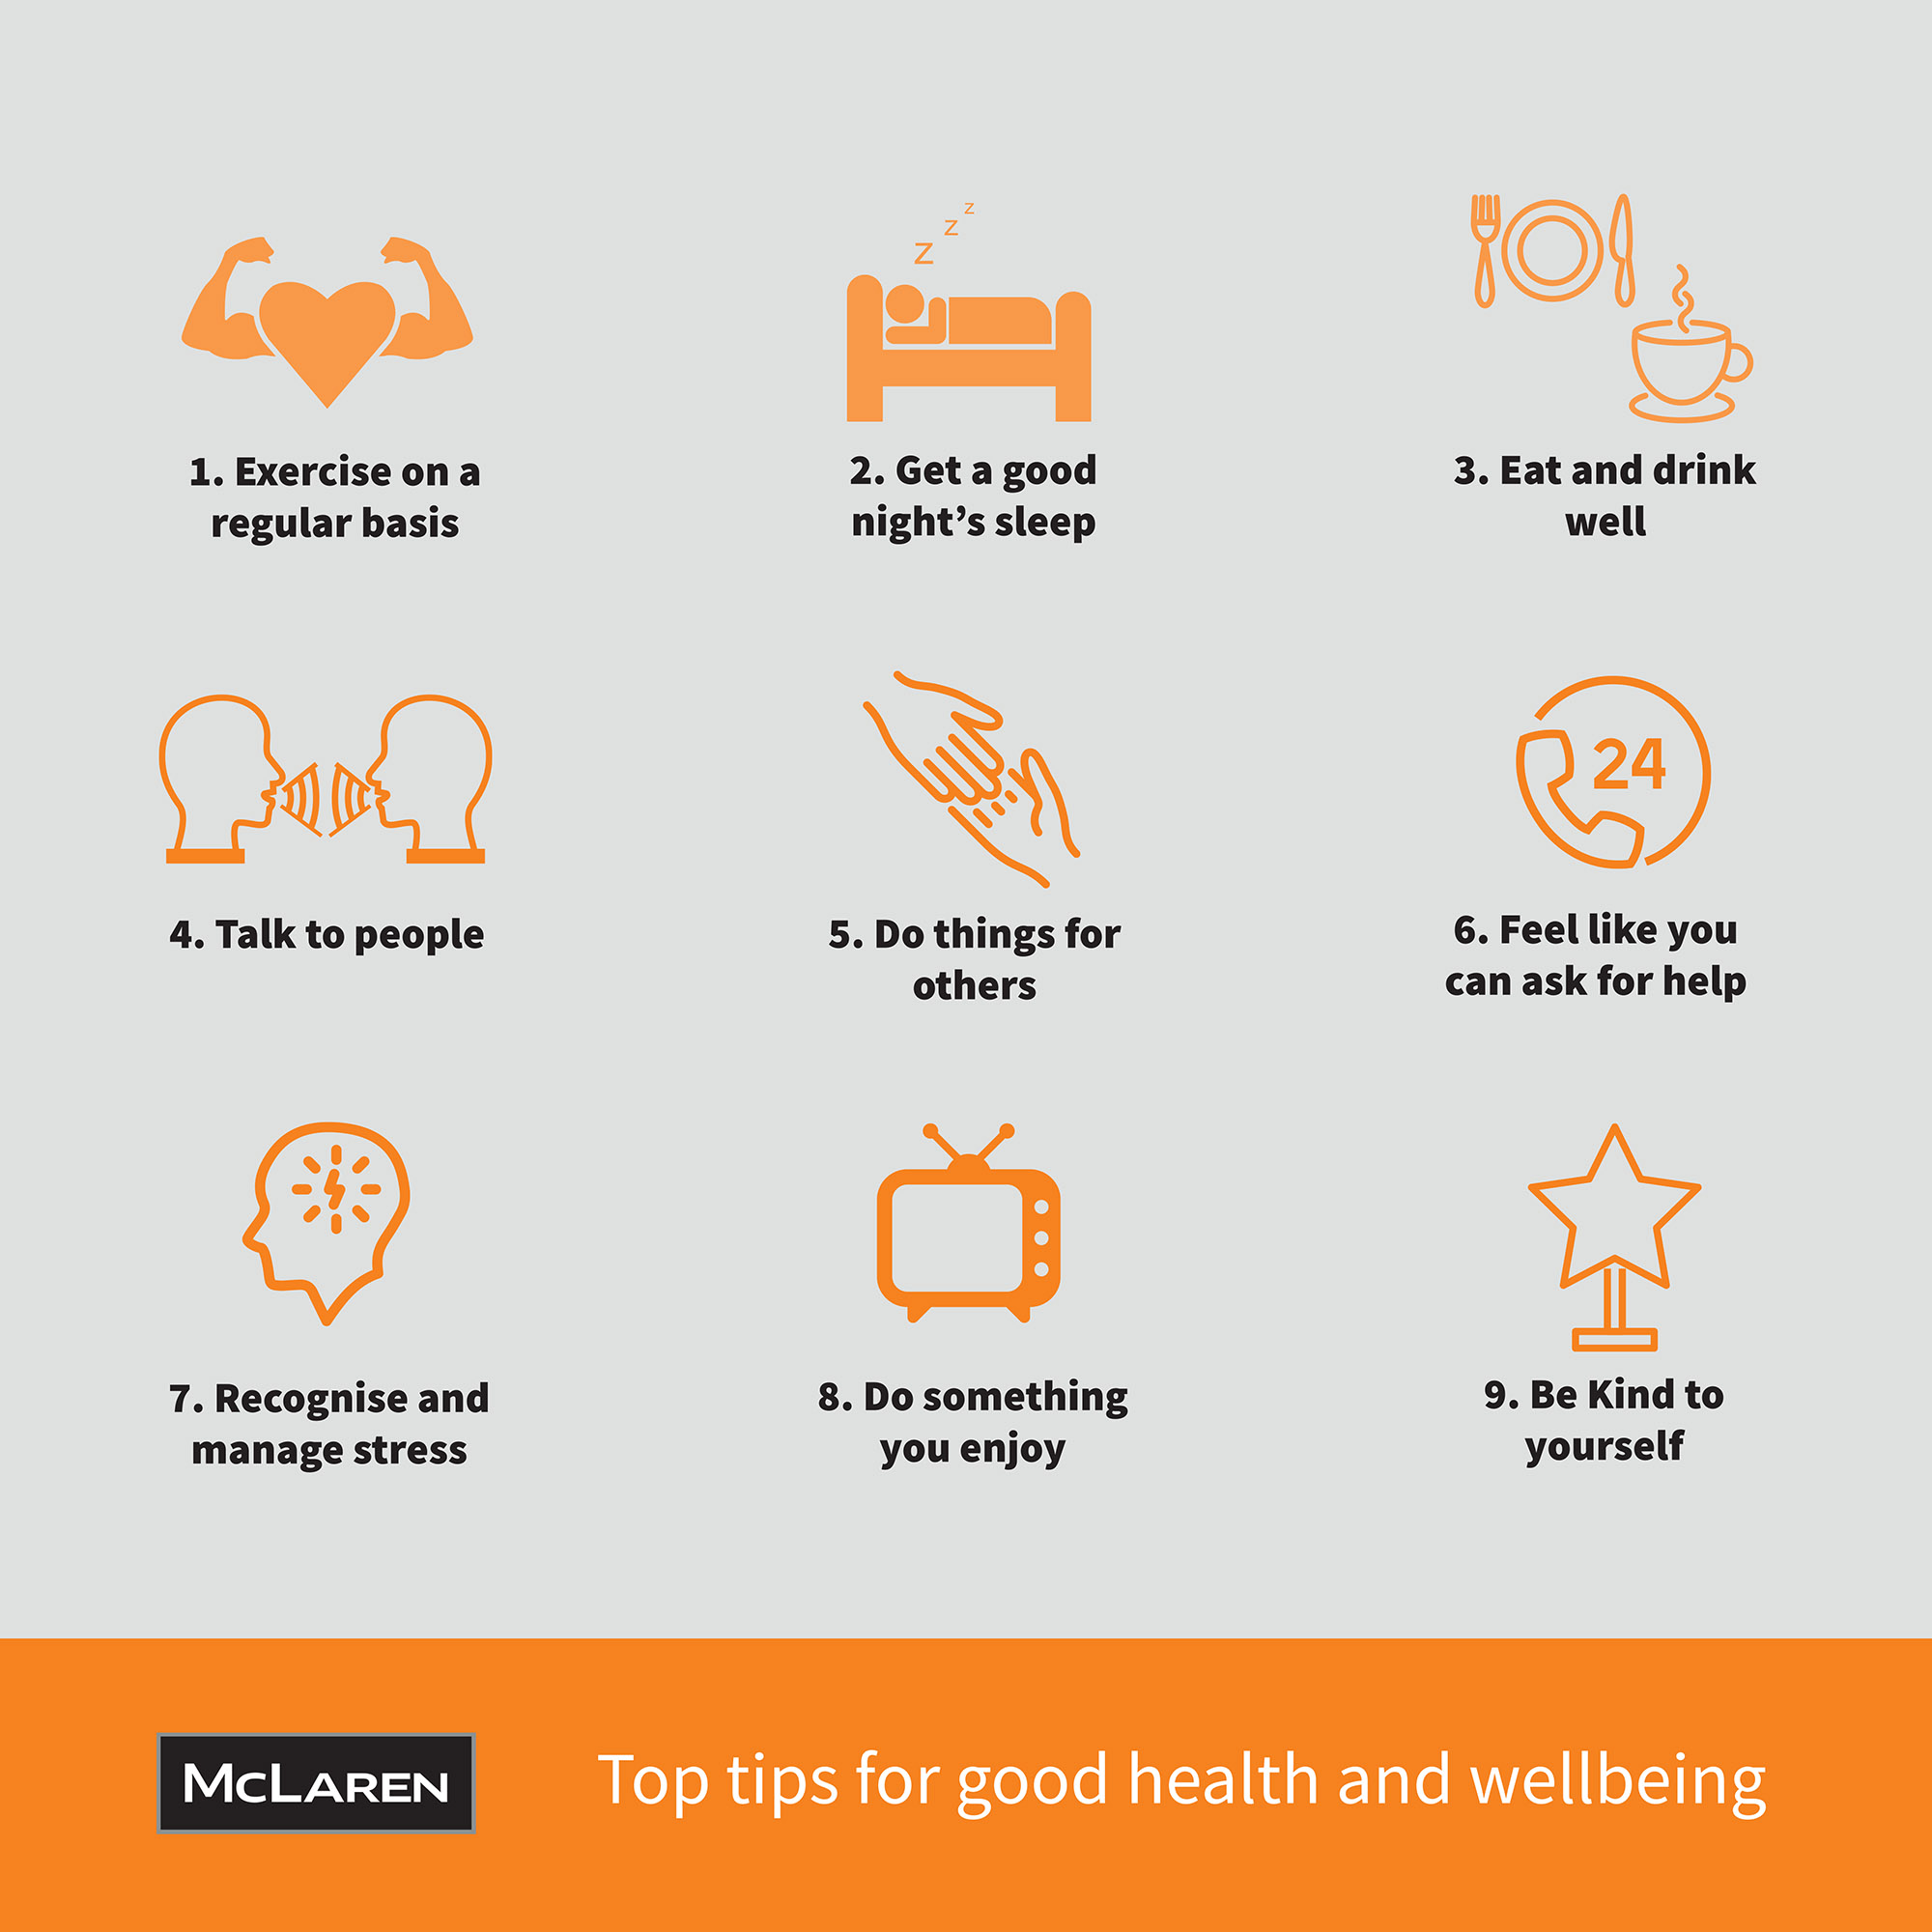 McLaren's top tips for health and wellbeing